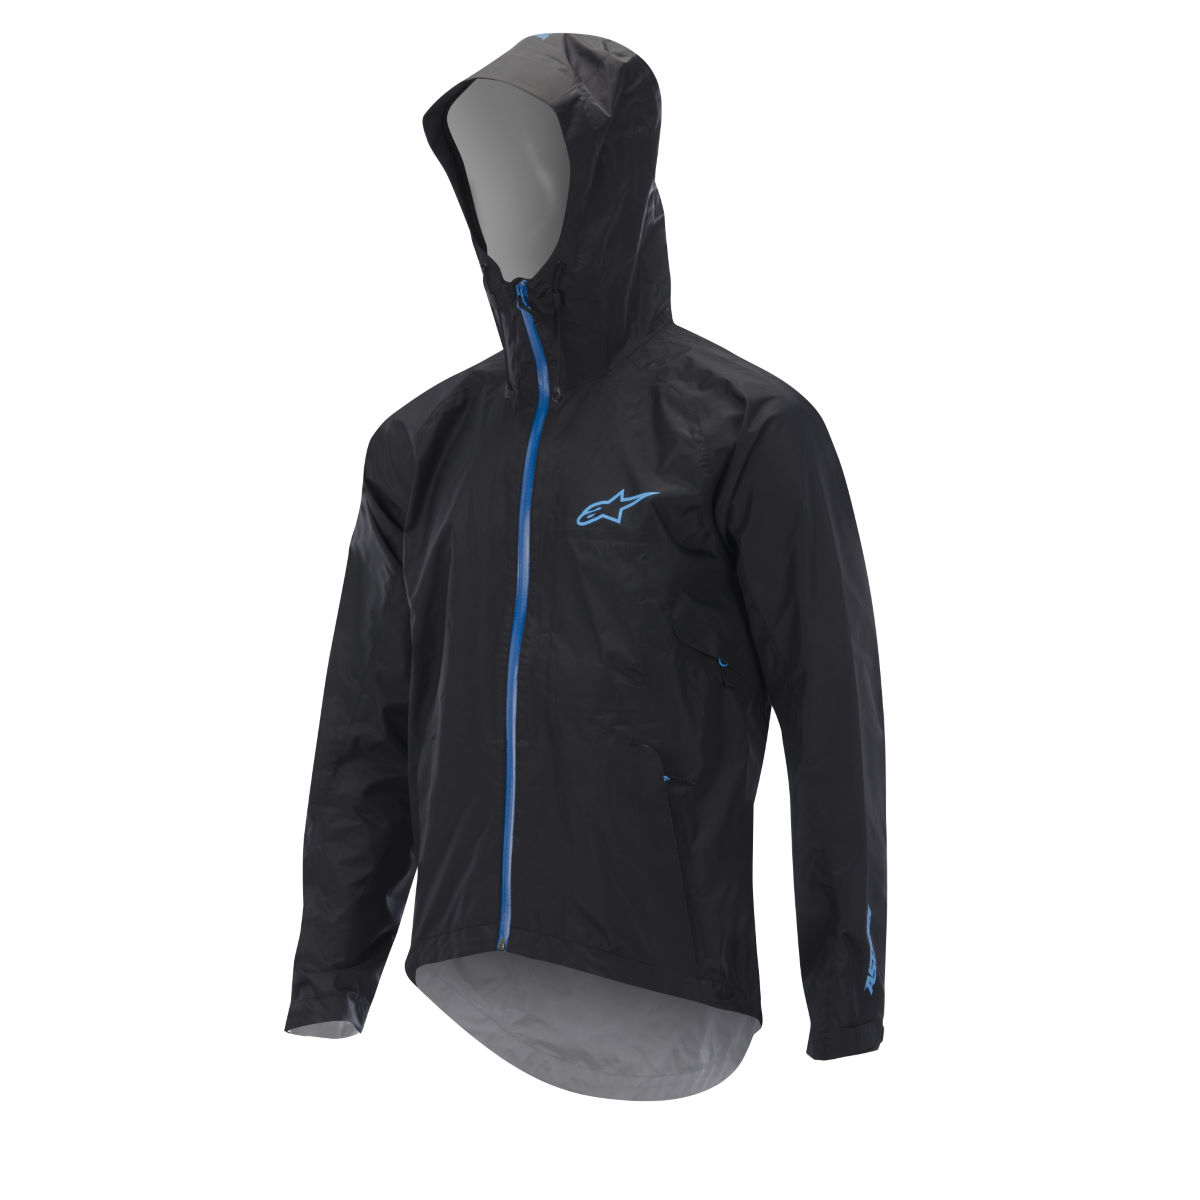 Alpinestars All Mountain Waterproof Jacket   Cycling Waterproof Jackets